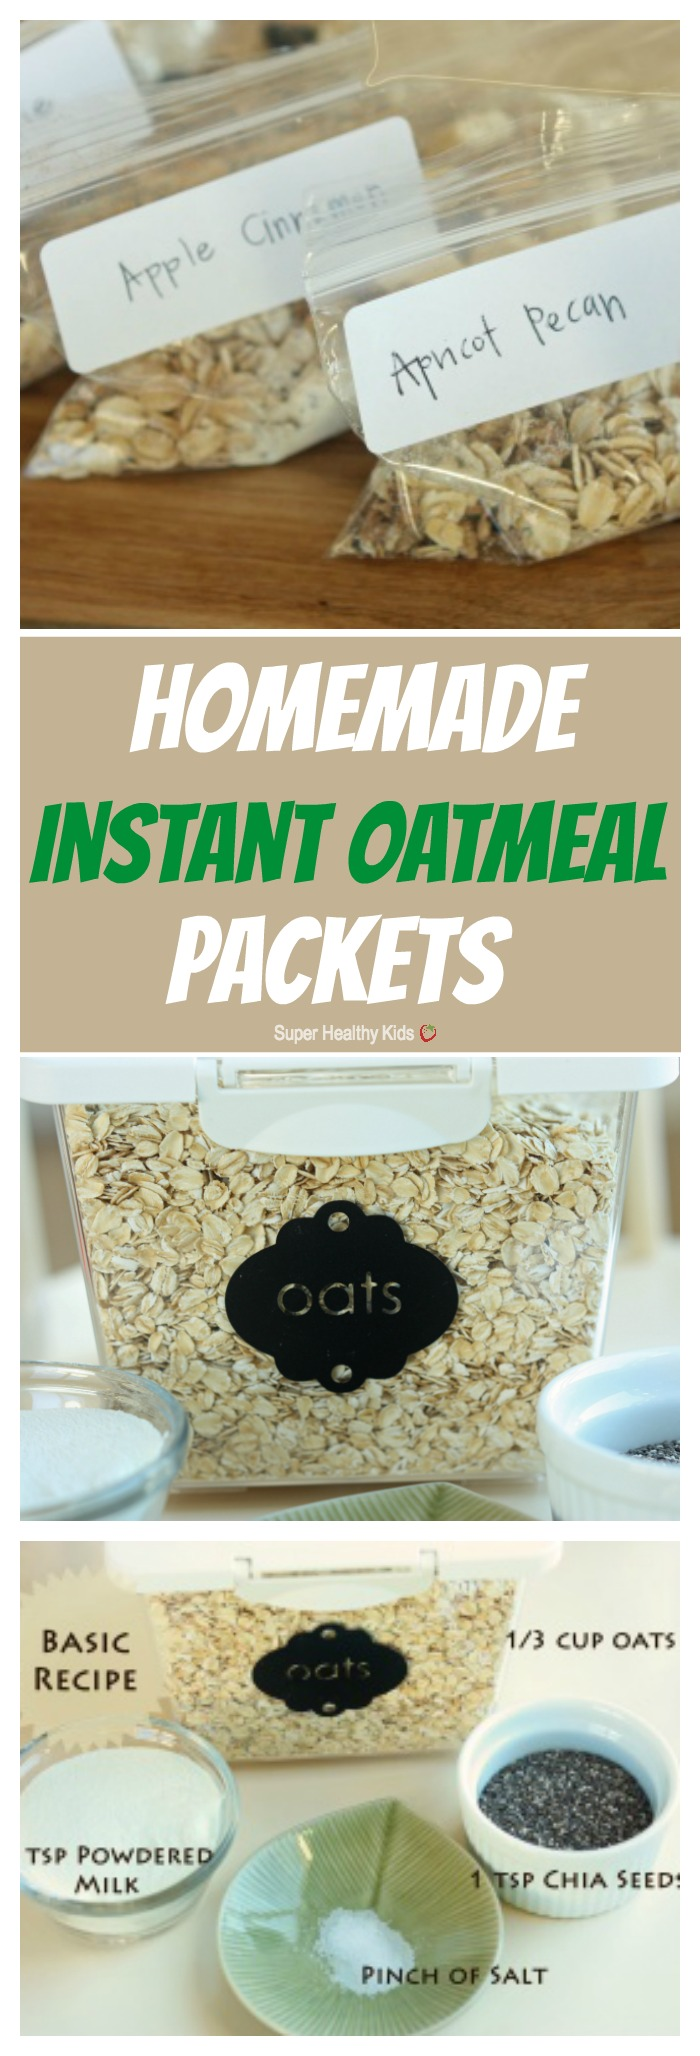 FOOD - Homemade Instant Oatmeal Packets. For a healthy, quick, and inexpensive breakfast, making your own homemade oatmeal packets is the way to go! https://www.superhealthykids.com/homemade-instant-oatmeal-packets/